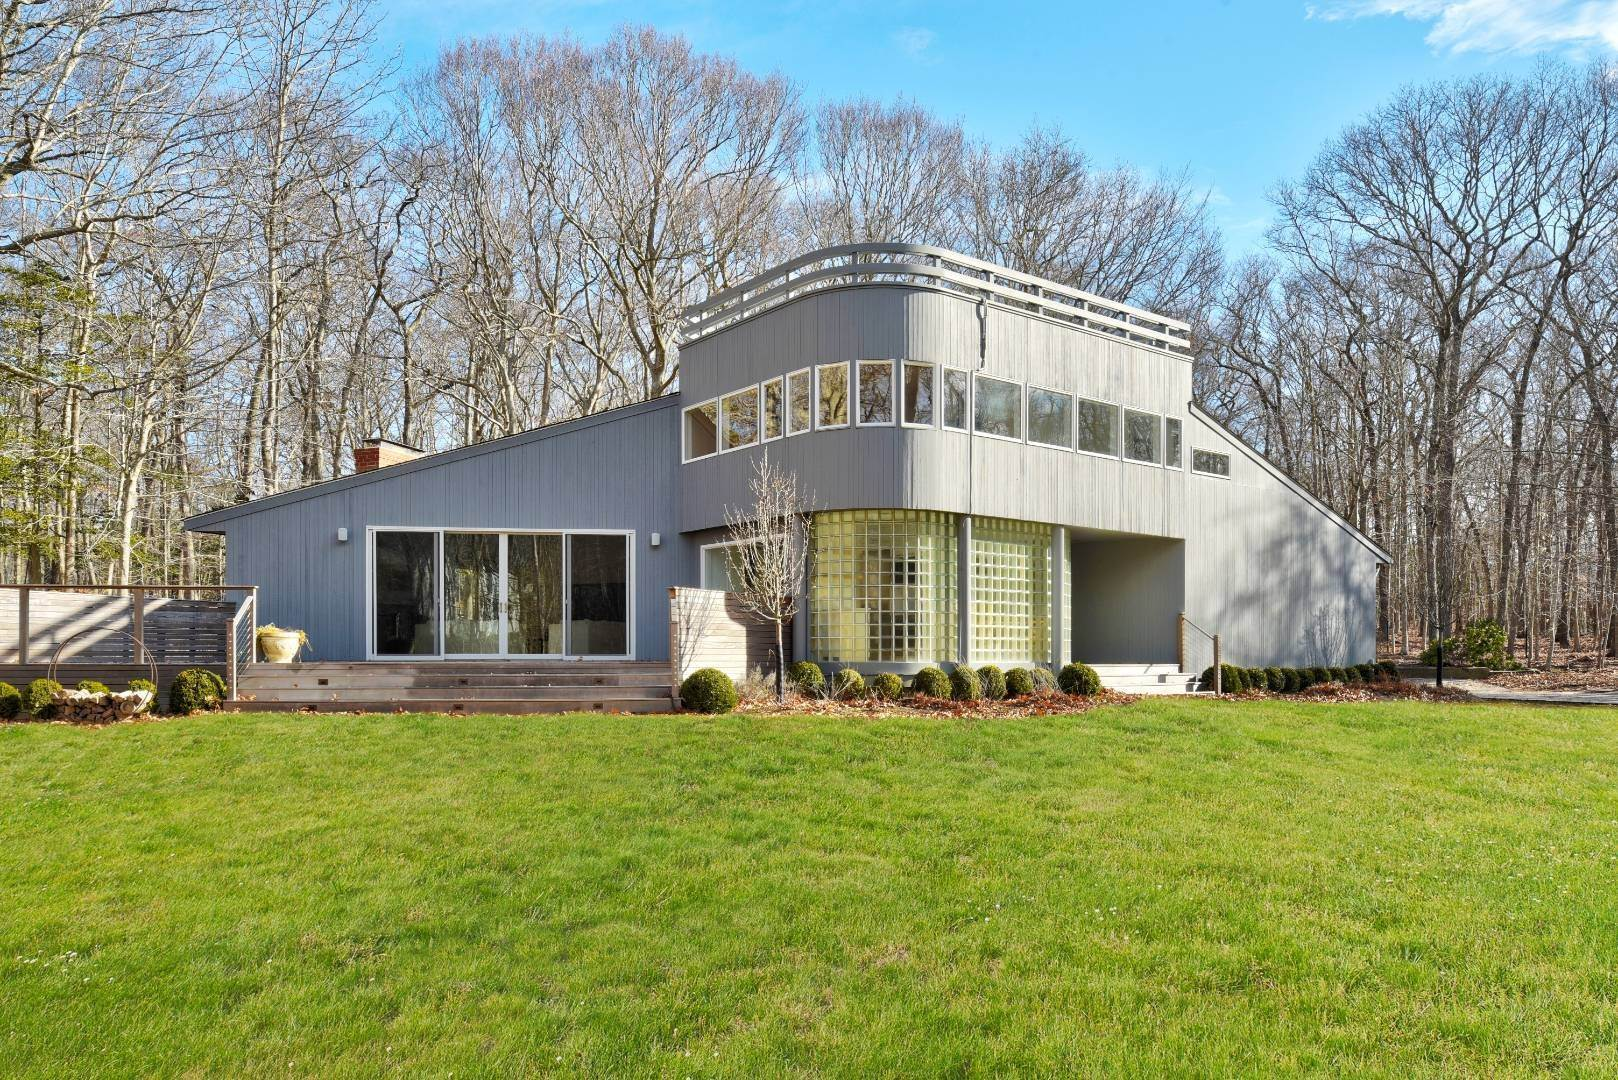 Single Family Home for Sale at Private Amagansett Modernist In Bell Estate 23 Woodedge Circle, Amagansett, NY 11930